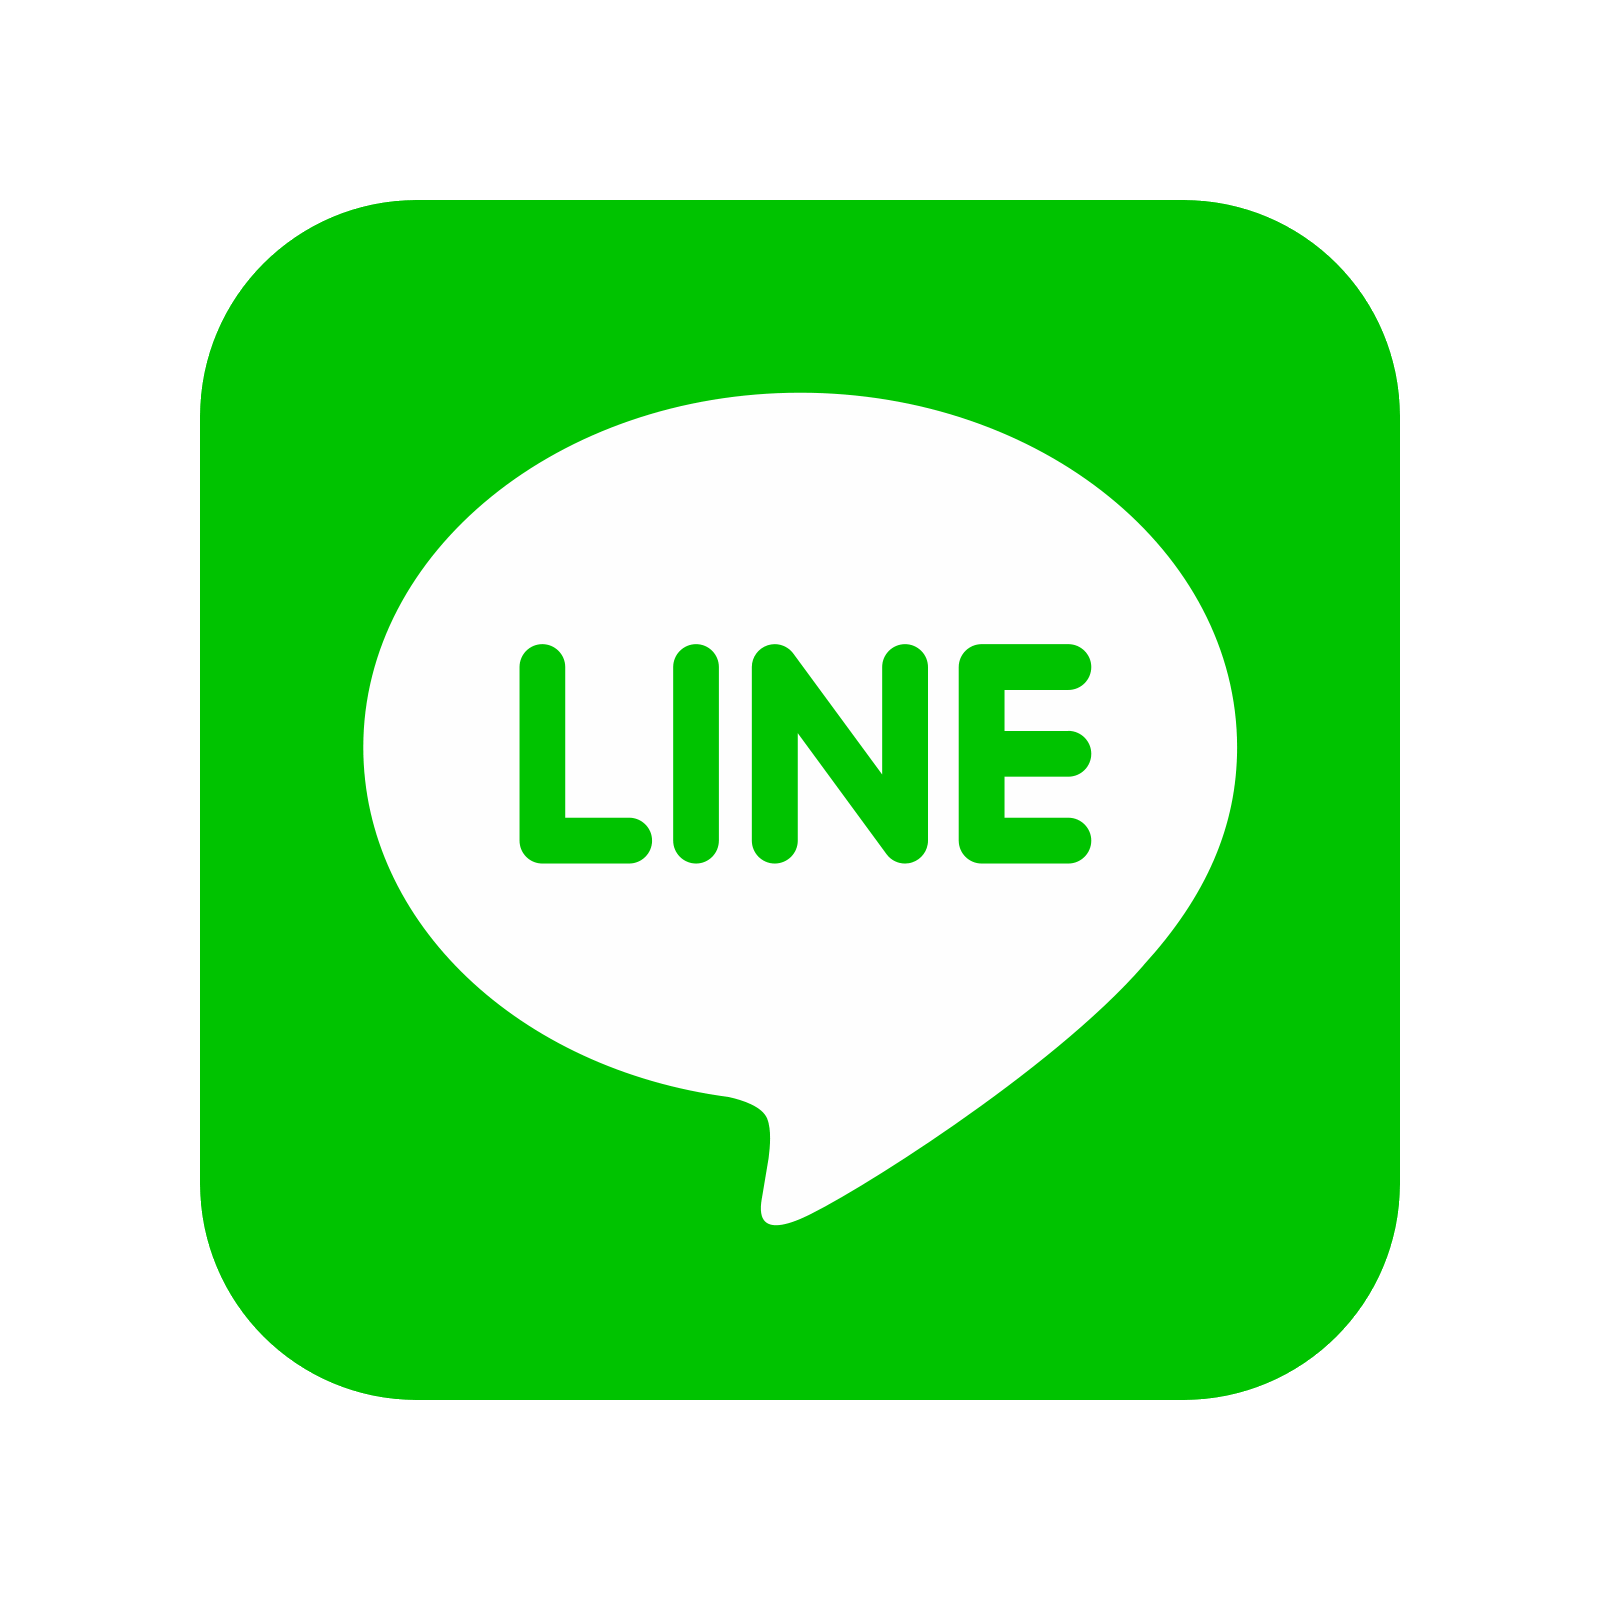 Line icon free download. .png png svg transparent